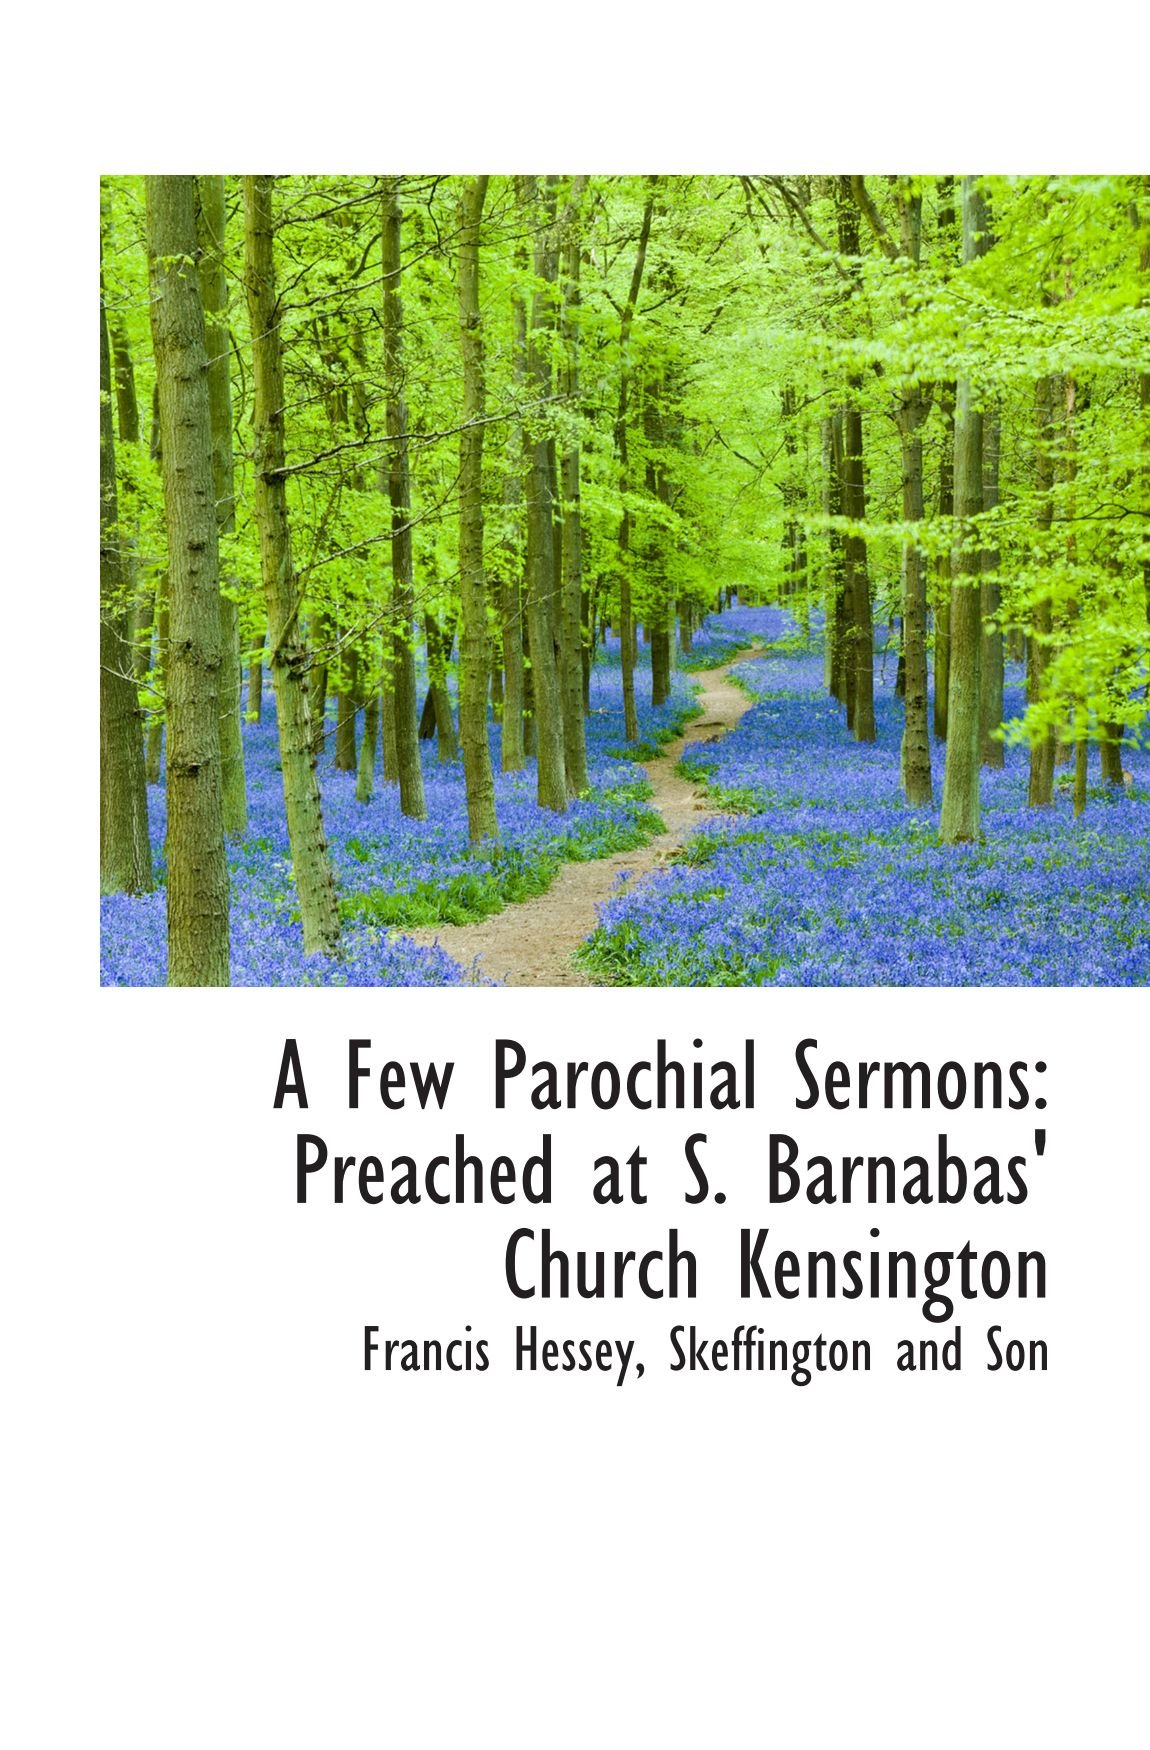 Download A Few Parochial Sermons: Preached at S. Barnabas' Church Kensington pdf